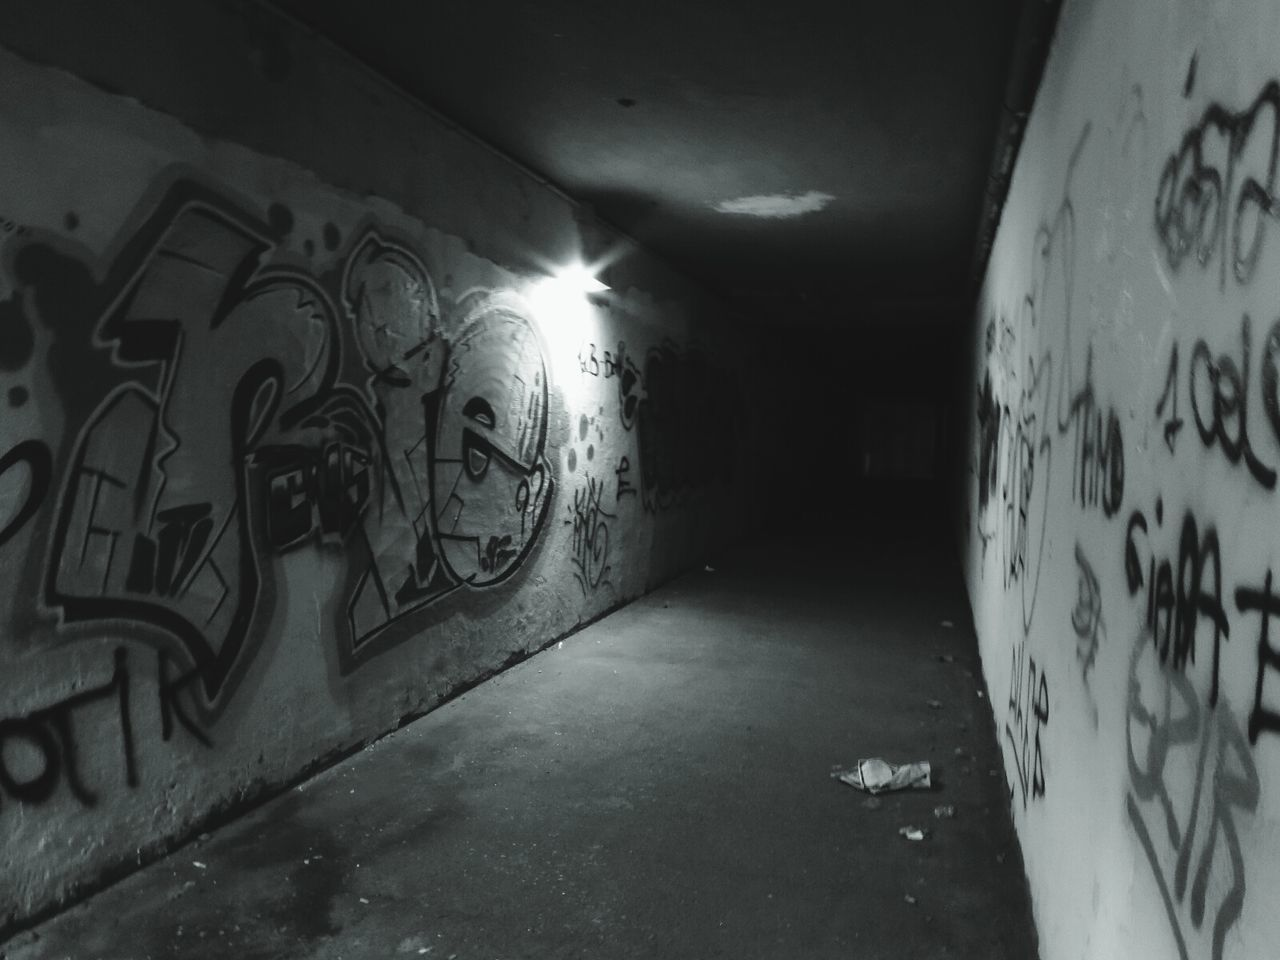 graffiti, indoors, illuminated, architecture, tunnel, built structure, no people, basement, day